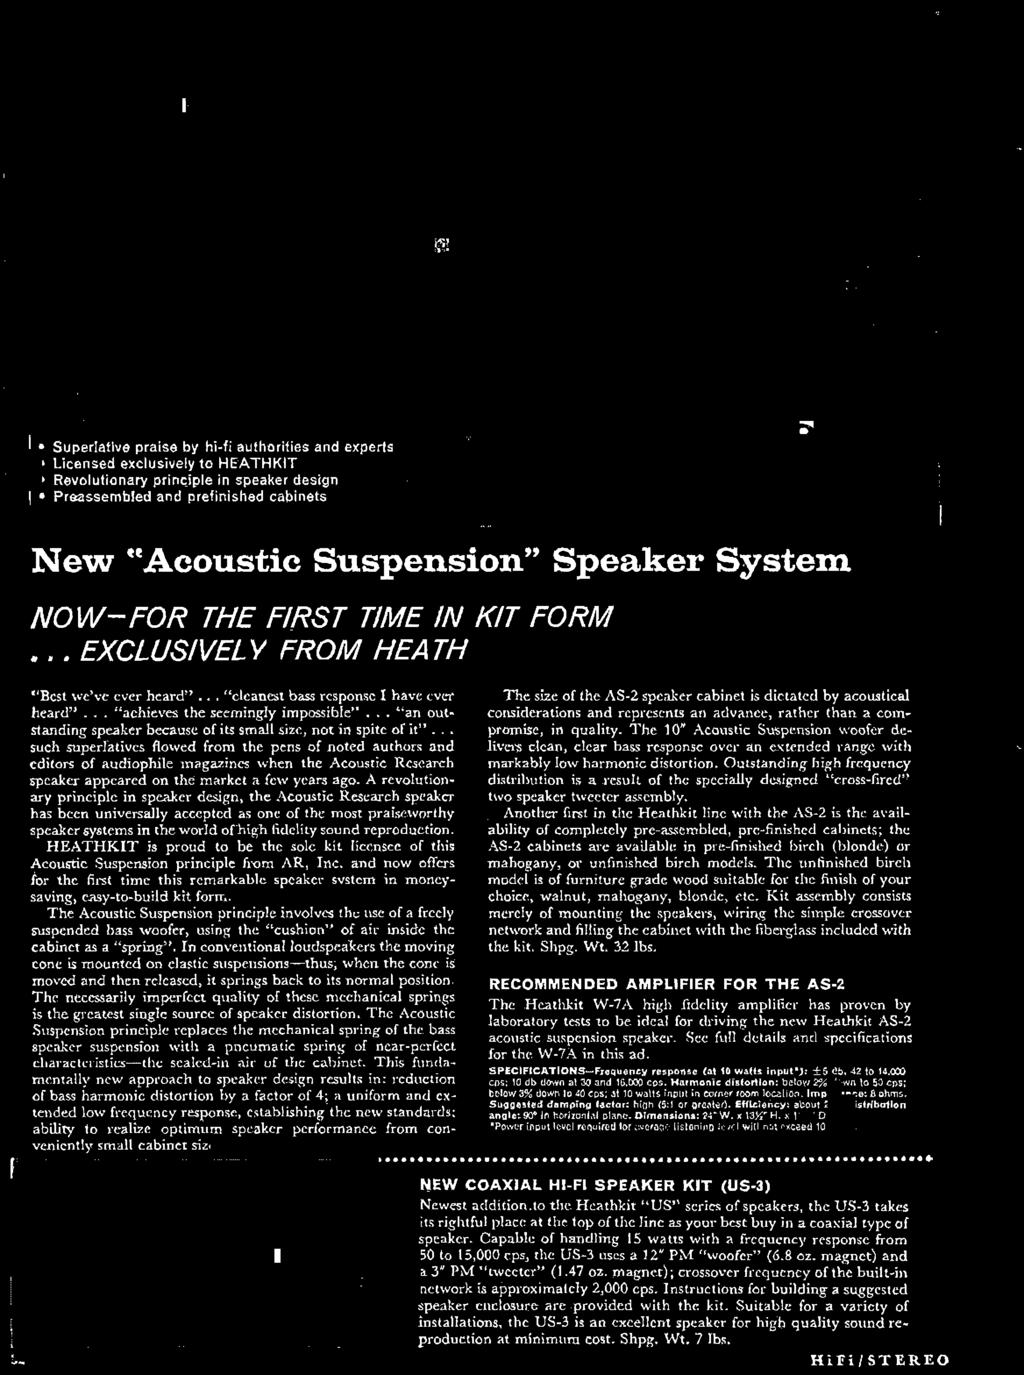 The size of the AS-2 speaker cabinet is dictated by acoustical considerations and represents an advance, rather than a compromise, in quality.